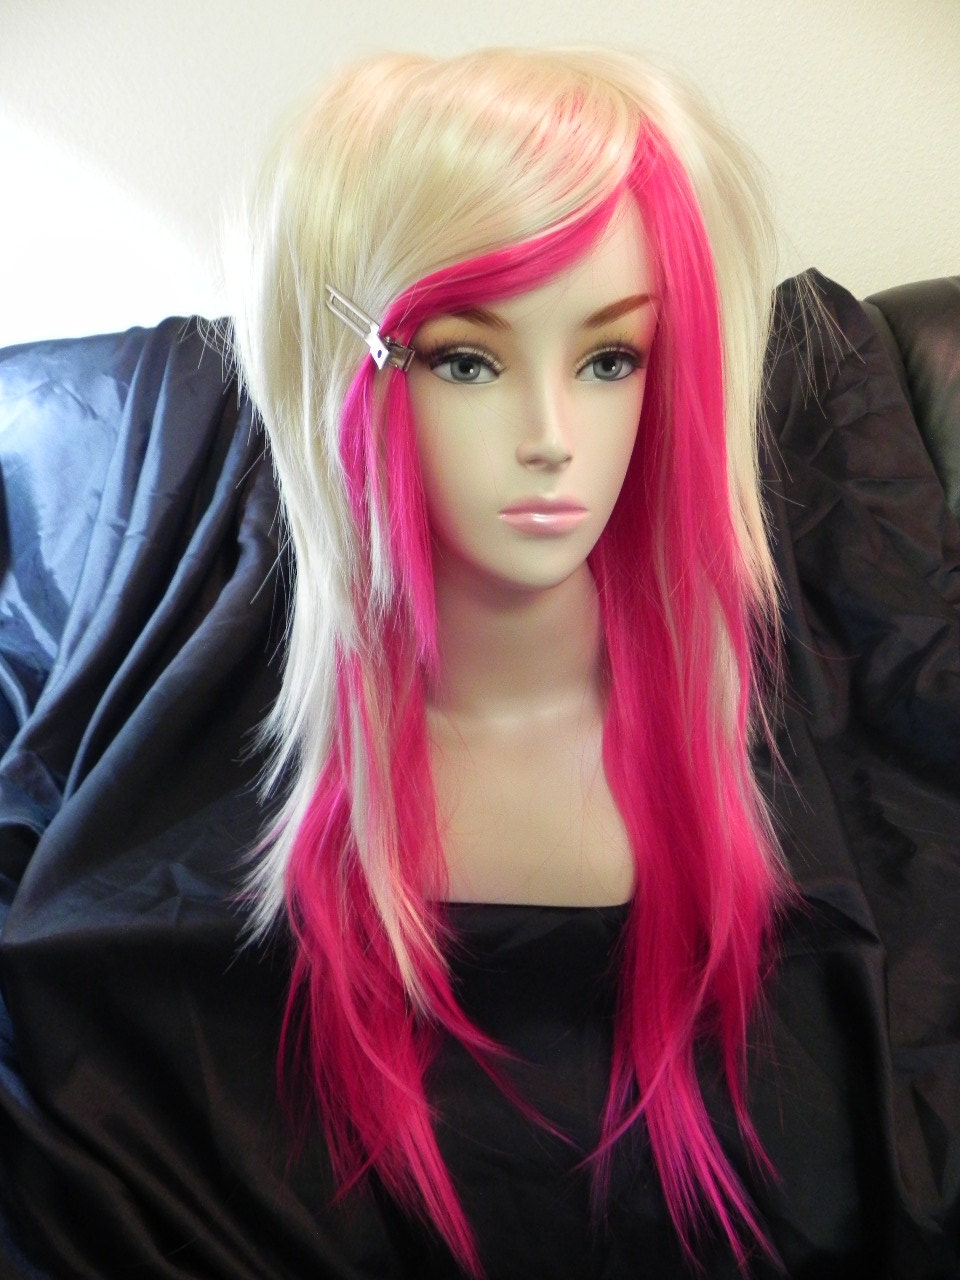 Hot Pink and Blonde / Long Straight Layered Wig by ExandOh